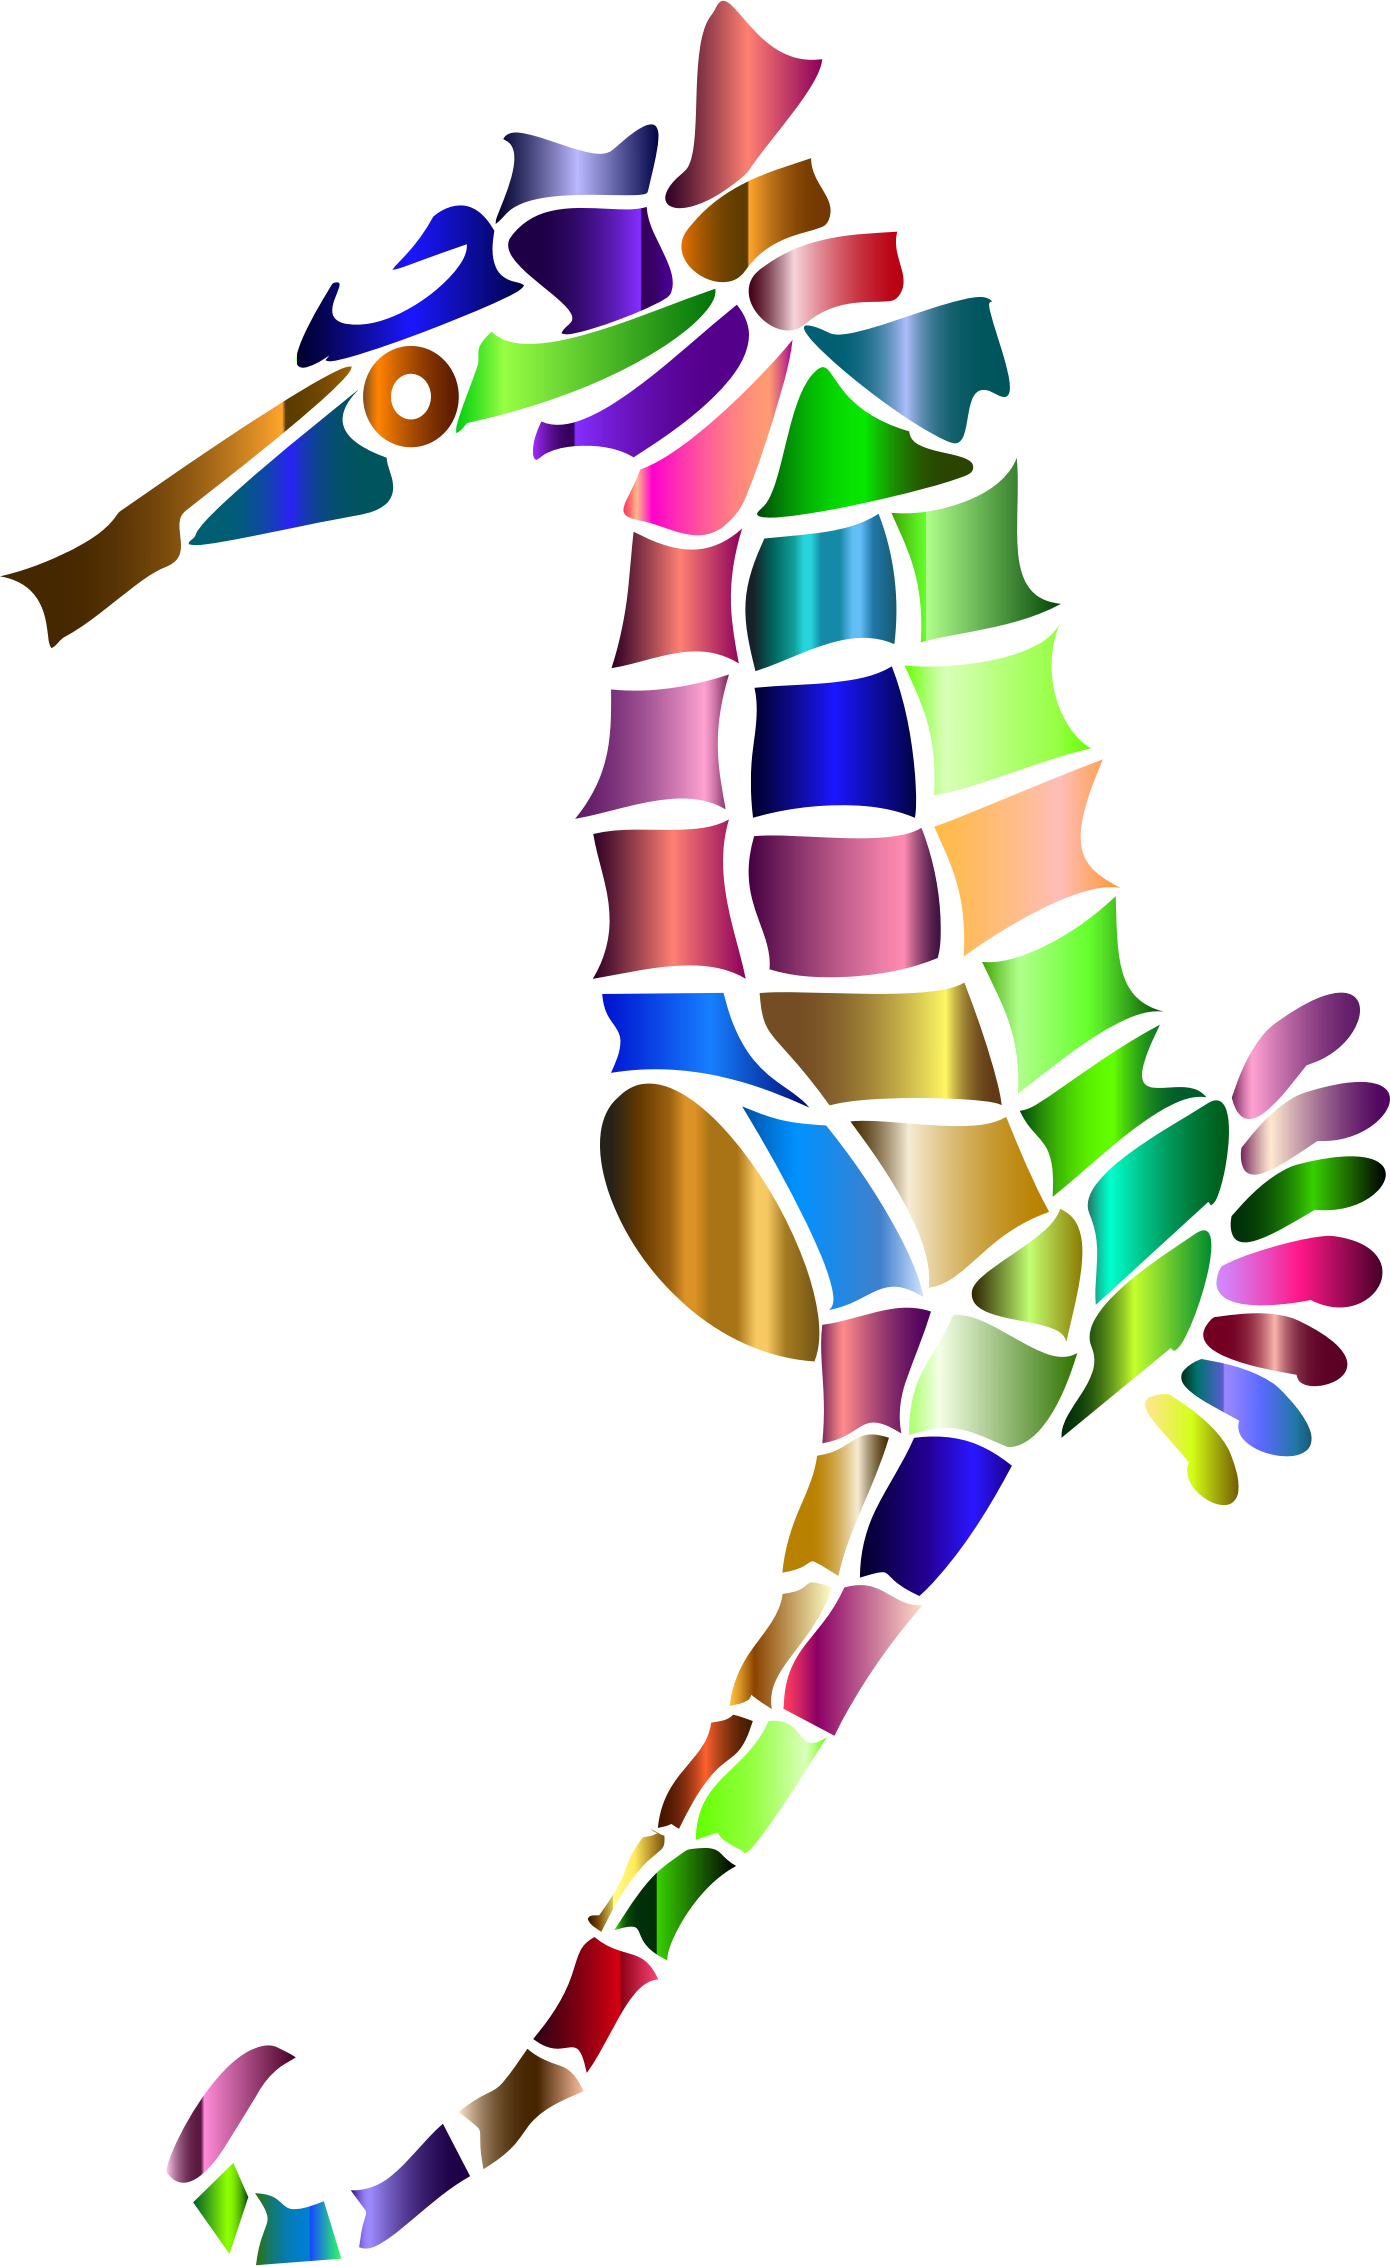 Prismatic Stylized Seahorse Silhouette 6 by GDJ